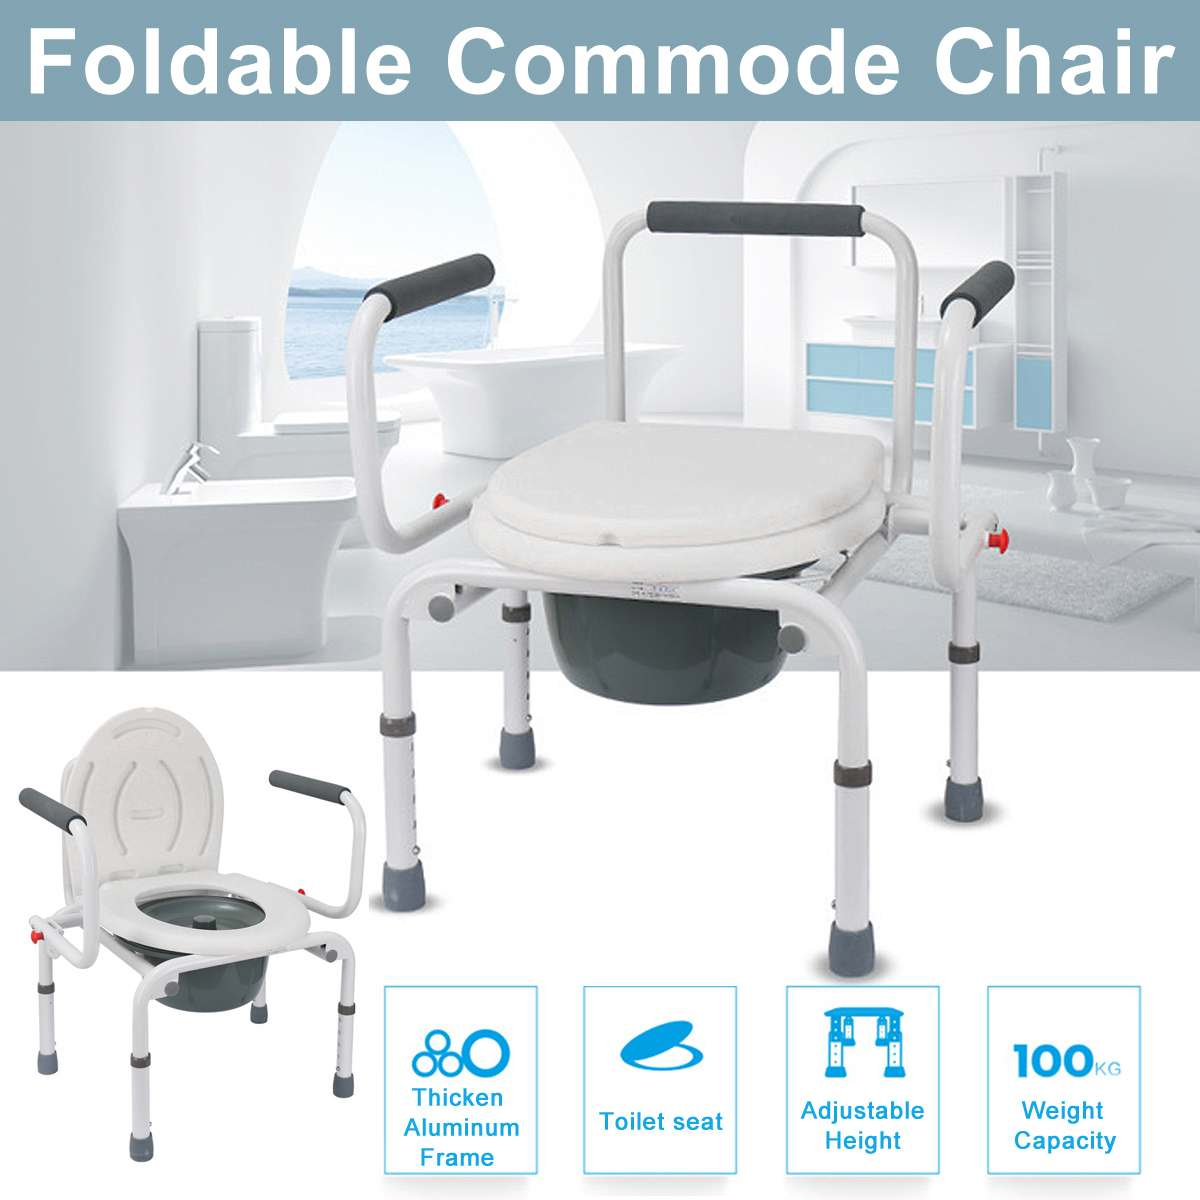 Astonishing Adjustable Height Commode Wheelchair Bedside Toilet Shower Gmtry Best Dining Table And Chair Ideas Images Gmtryco